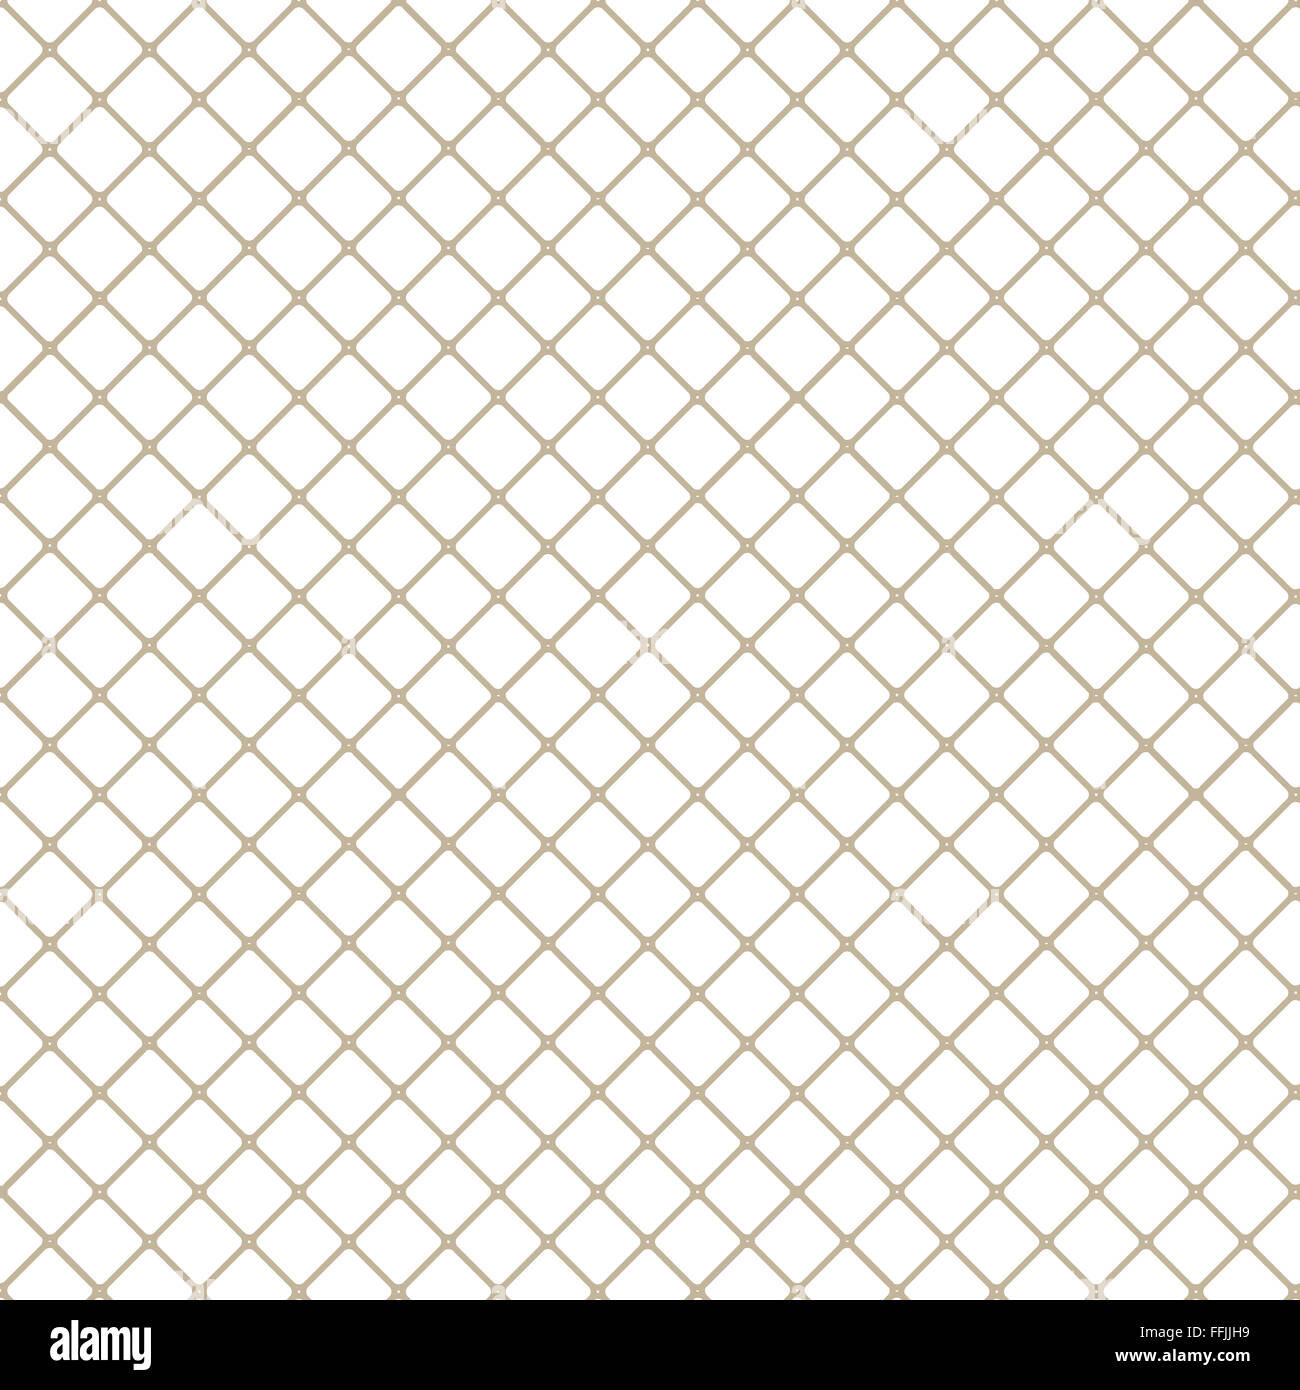 Line Texture : Seamless pattern mesh line texture lattice